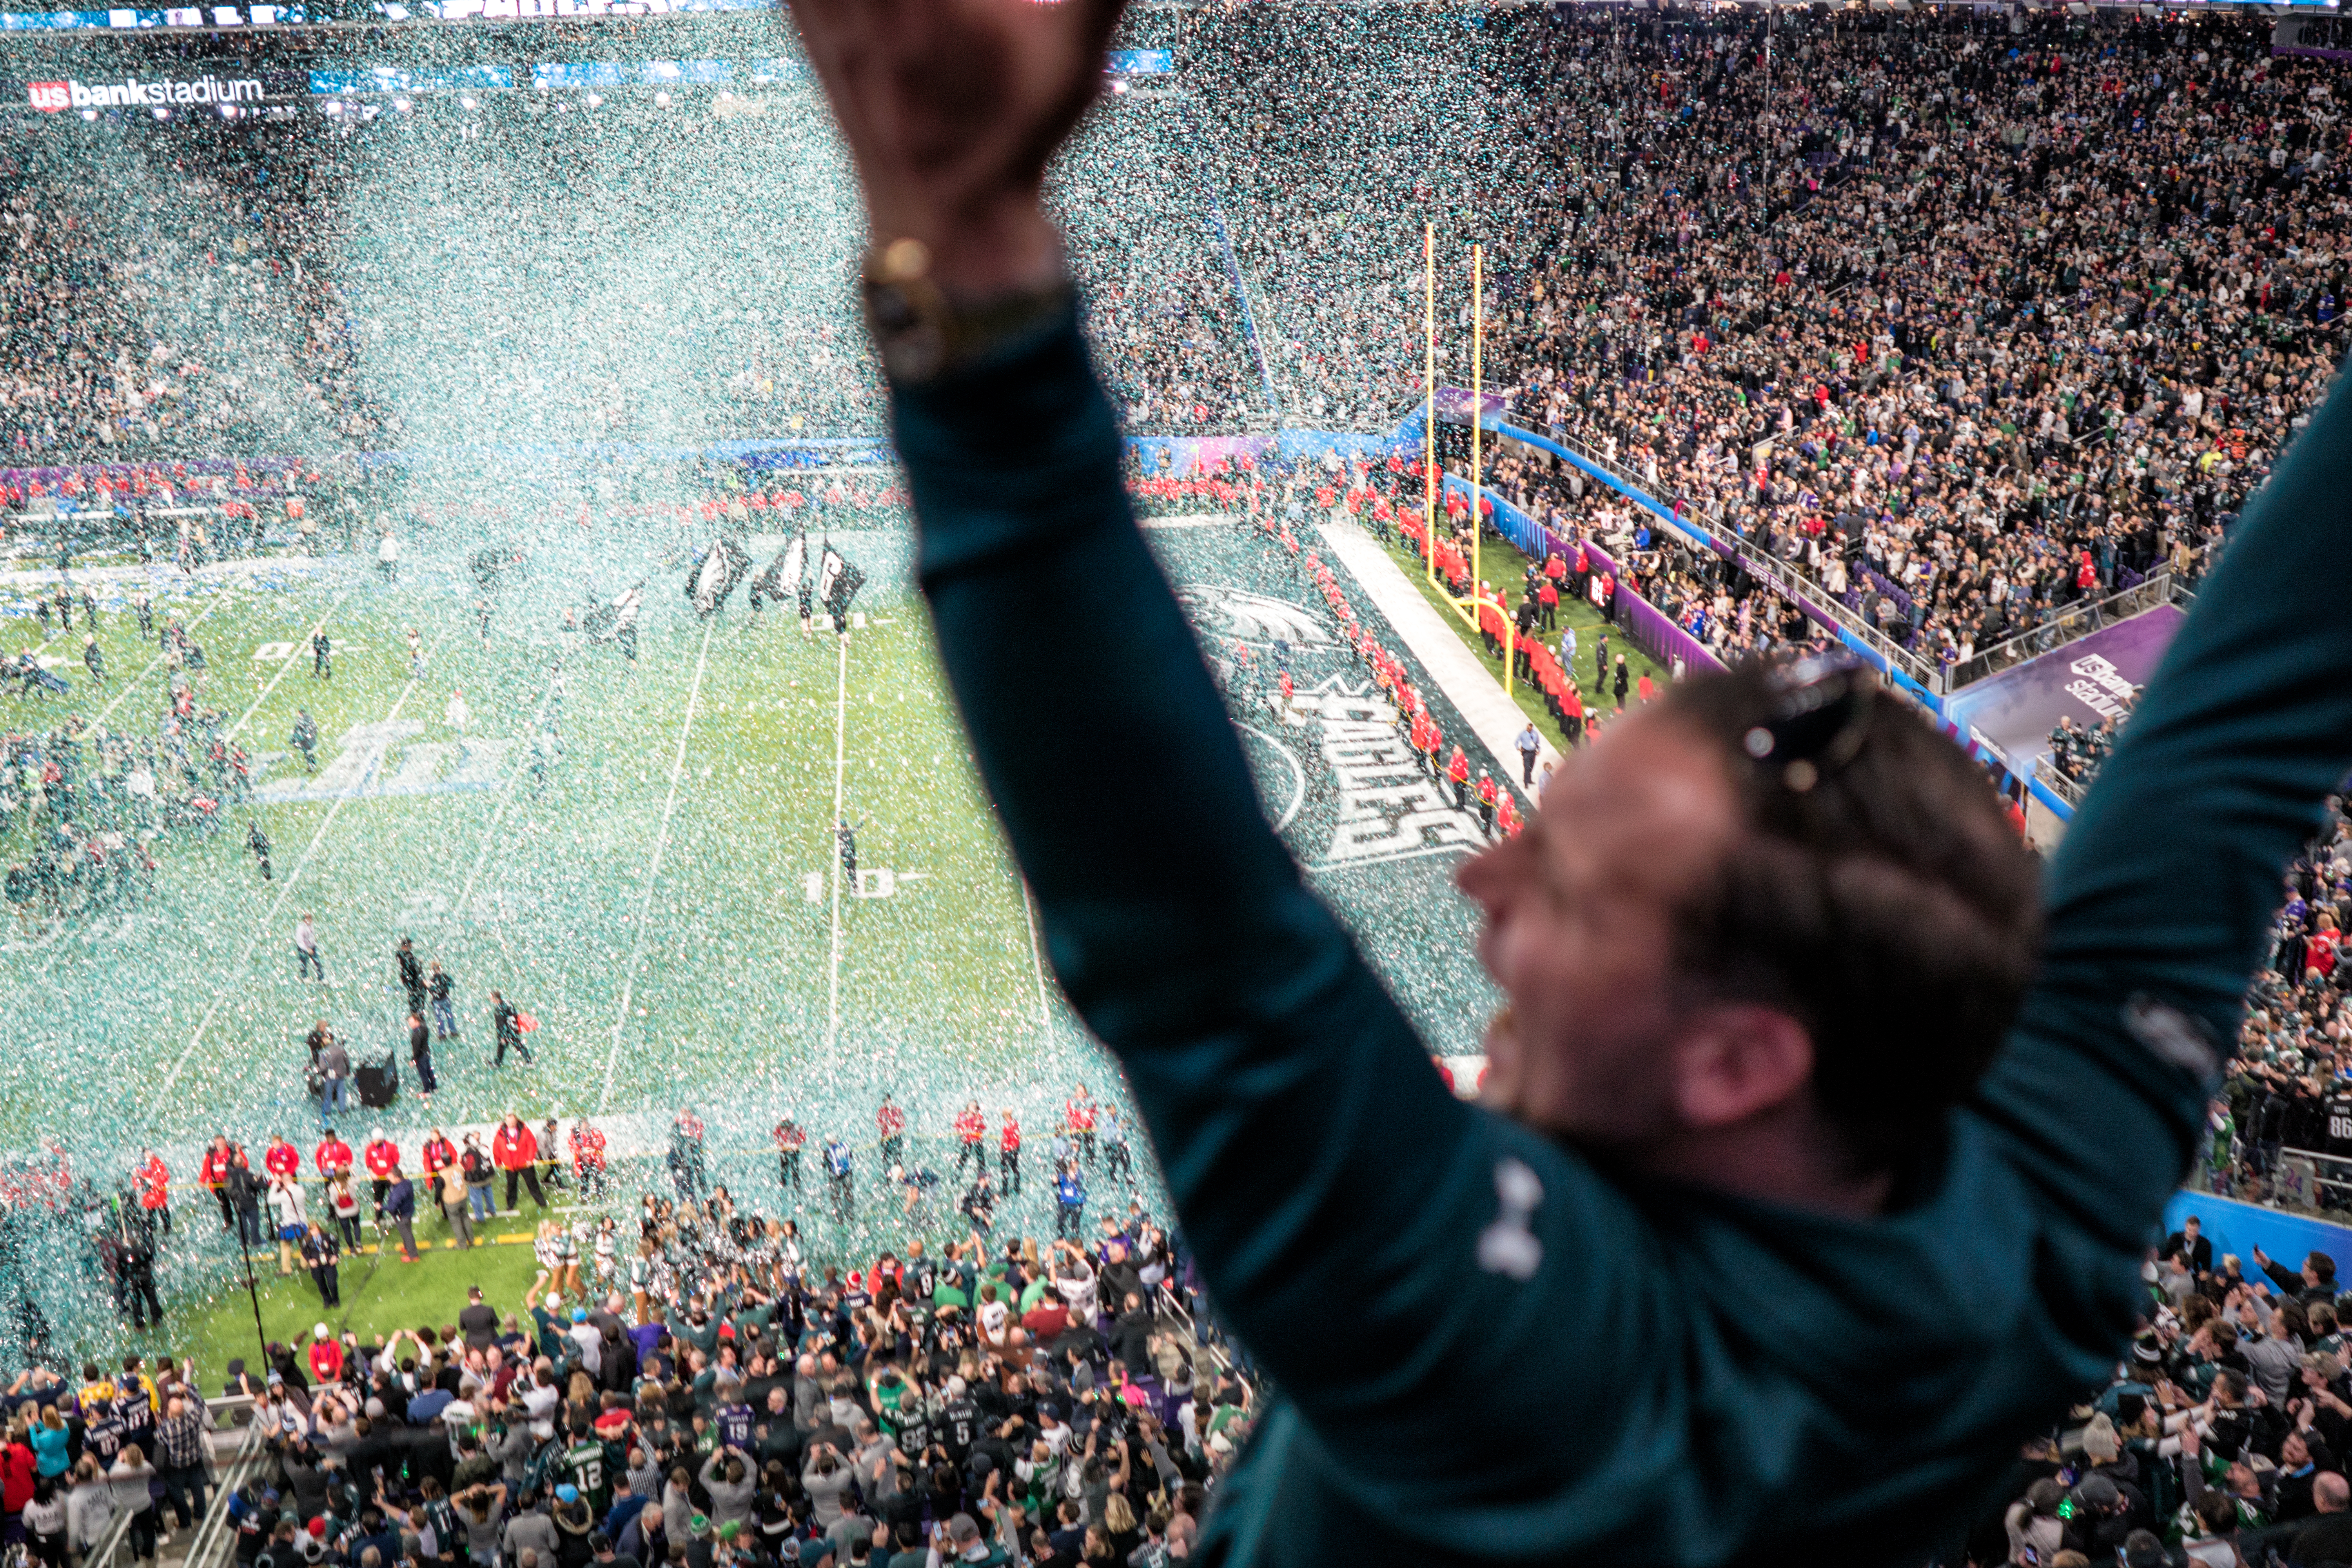 f68a4e4ee An Eagles fan in attendance at U.S. Bank Stadium celebrates following the  team's victory at Super Bowl LII.